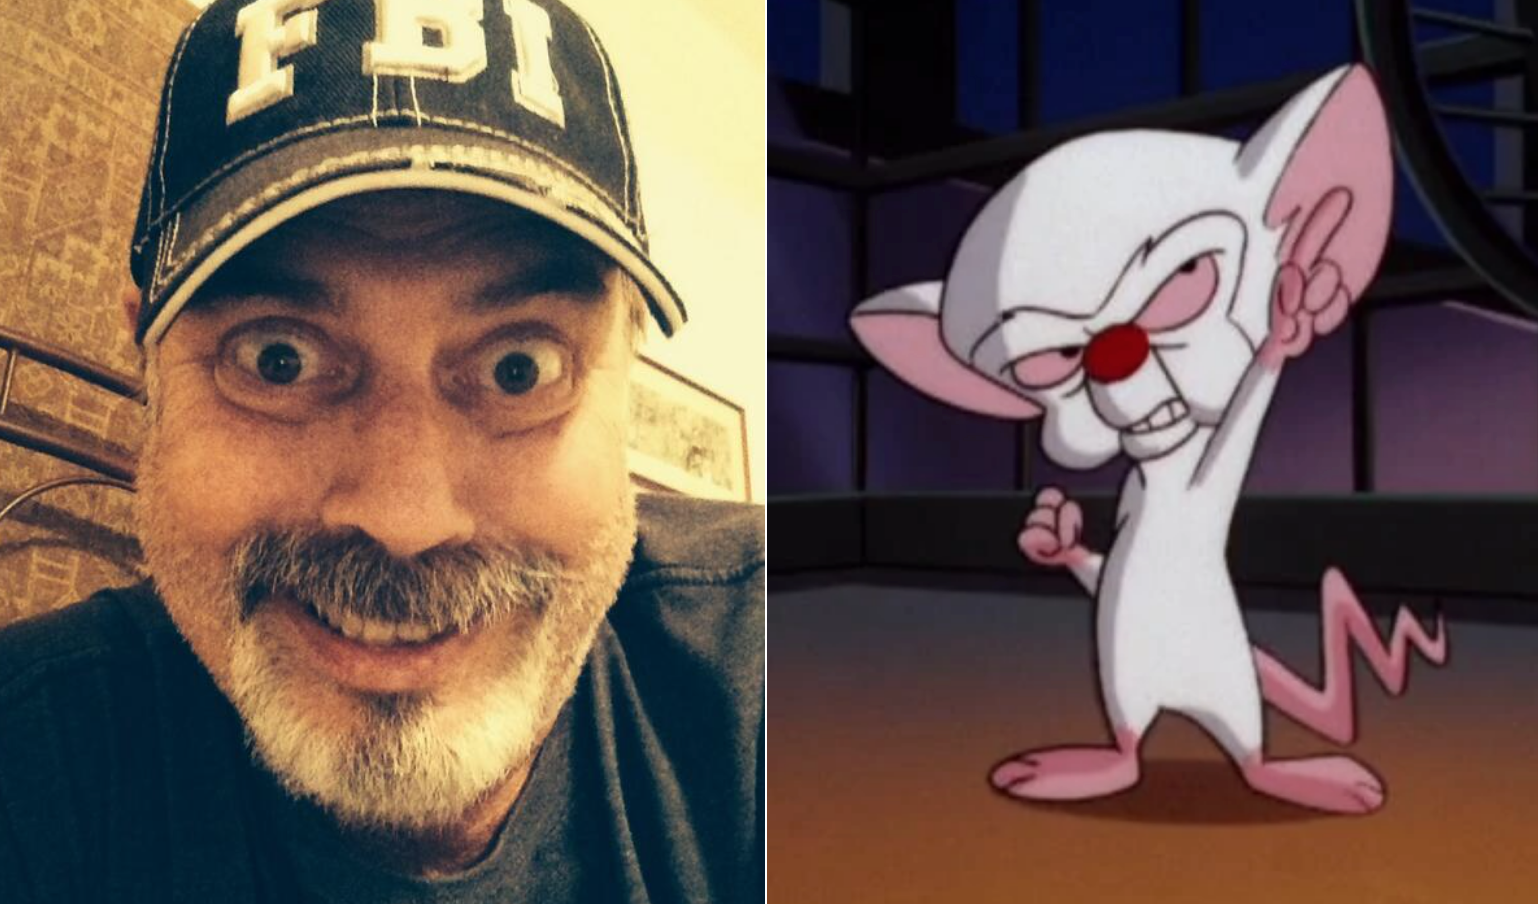 R.I.P. Gordon Bressack, Pinky and the Brain writer dead at 68